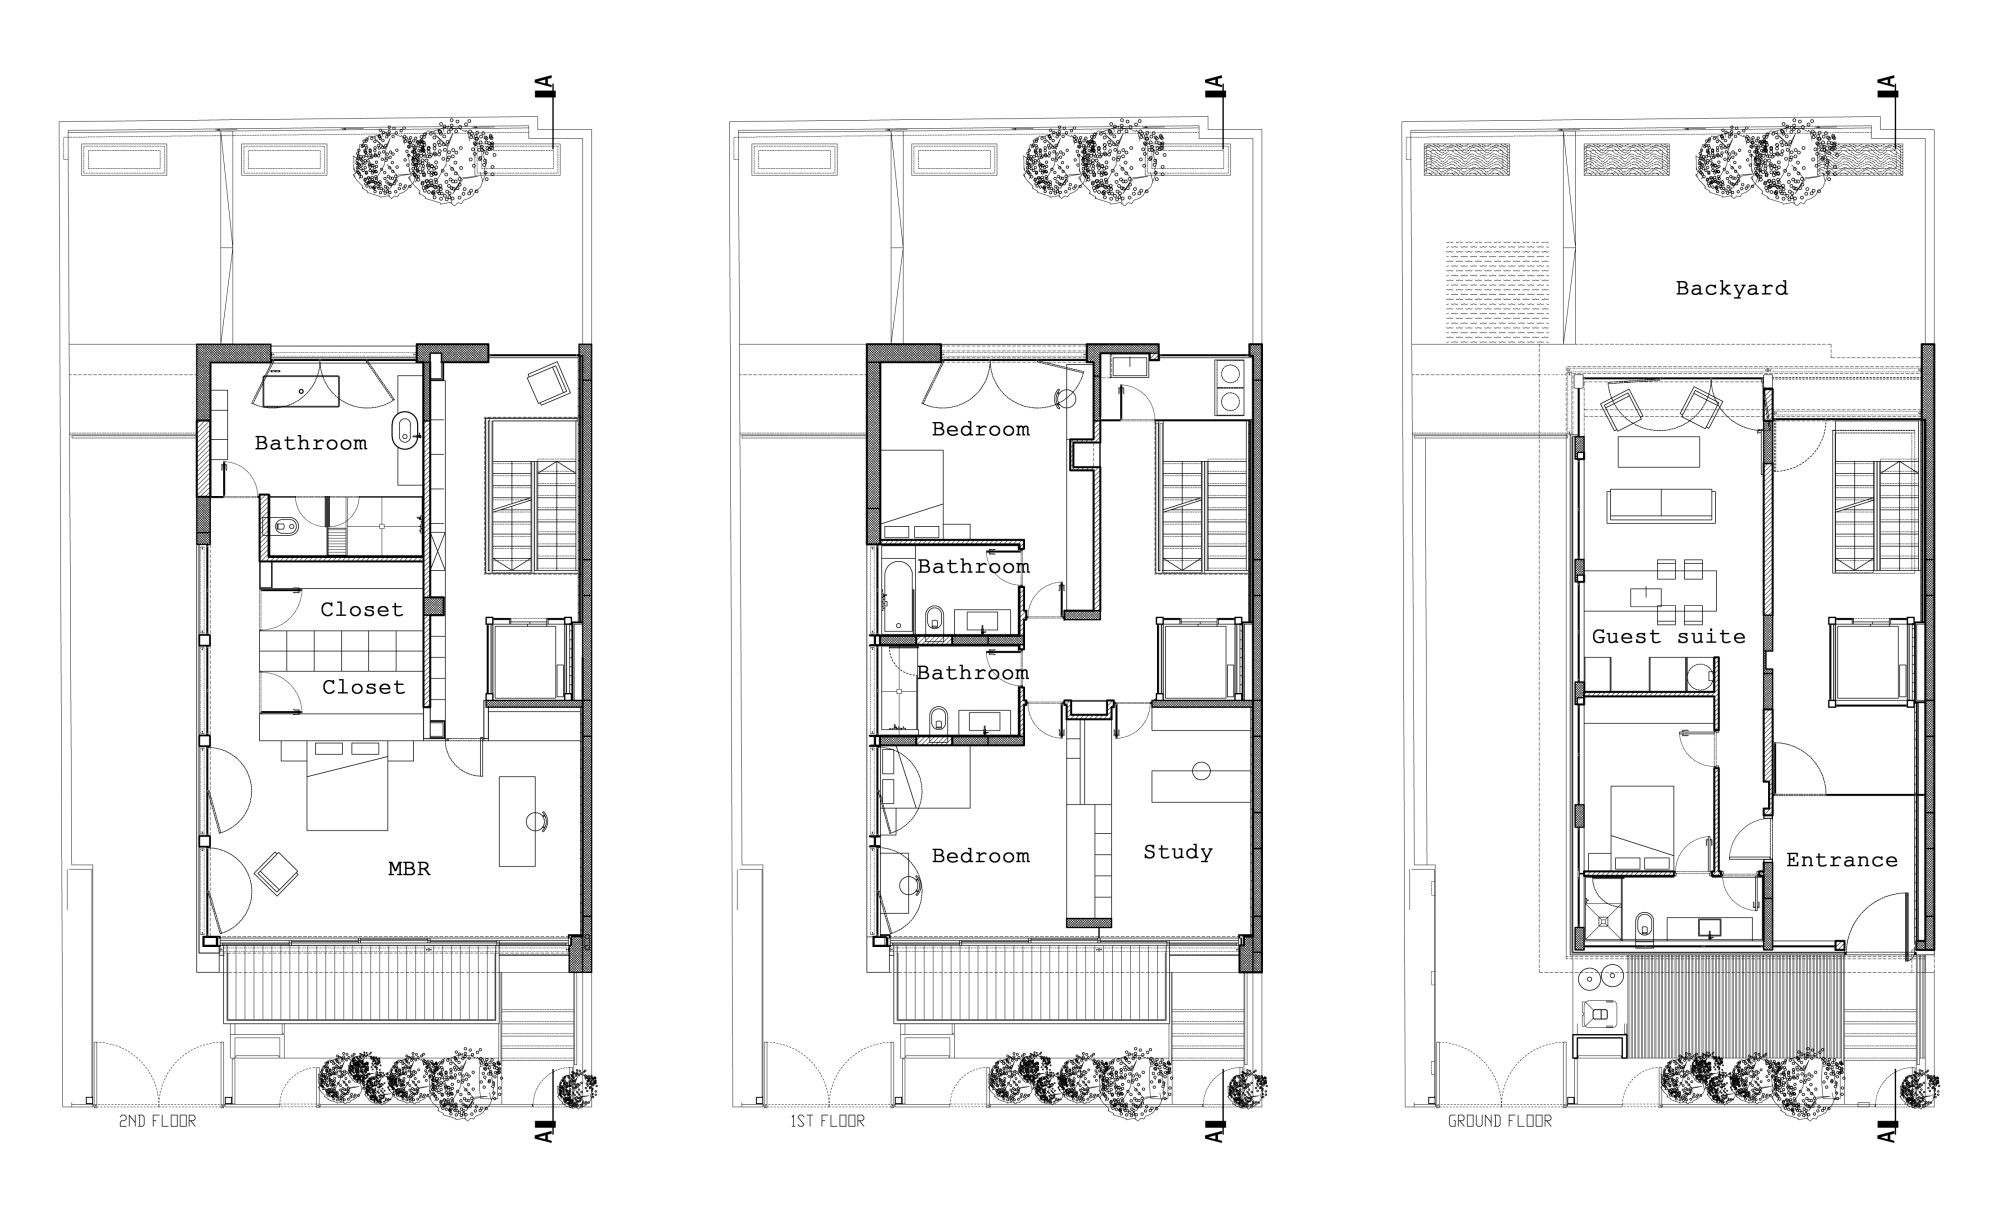 Townhouse plans modern house for Townhouse design